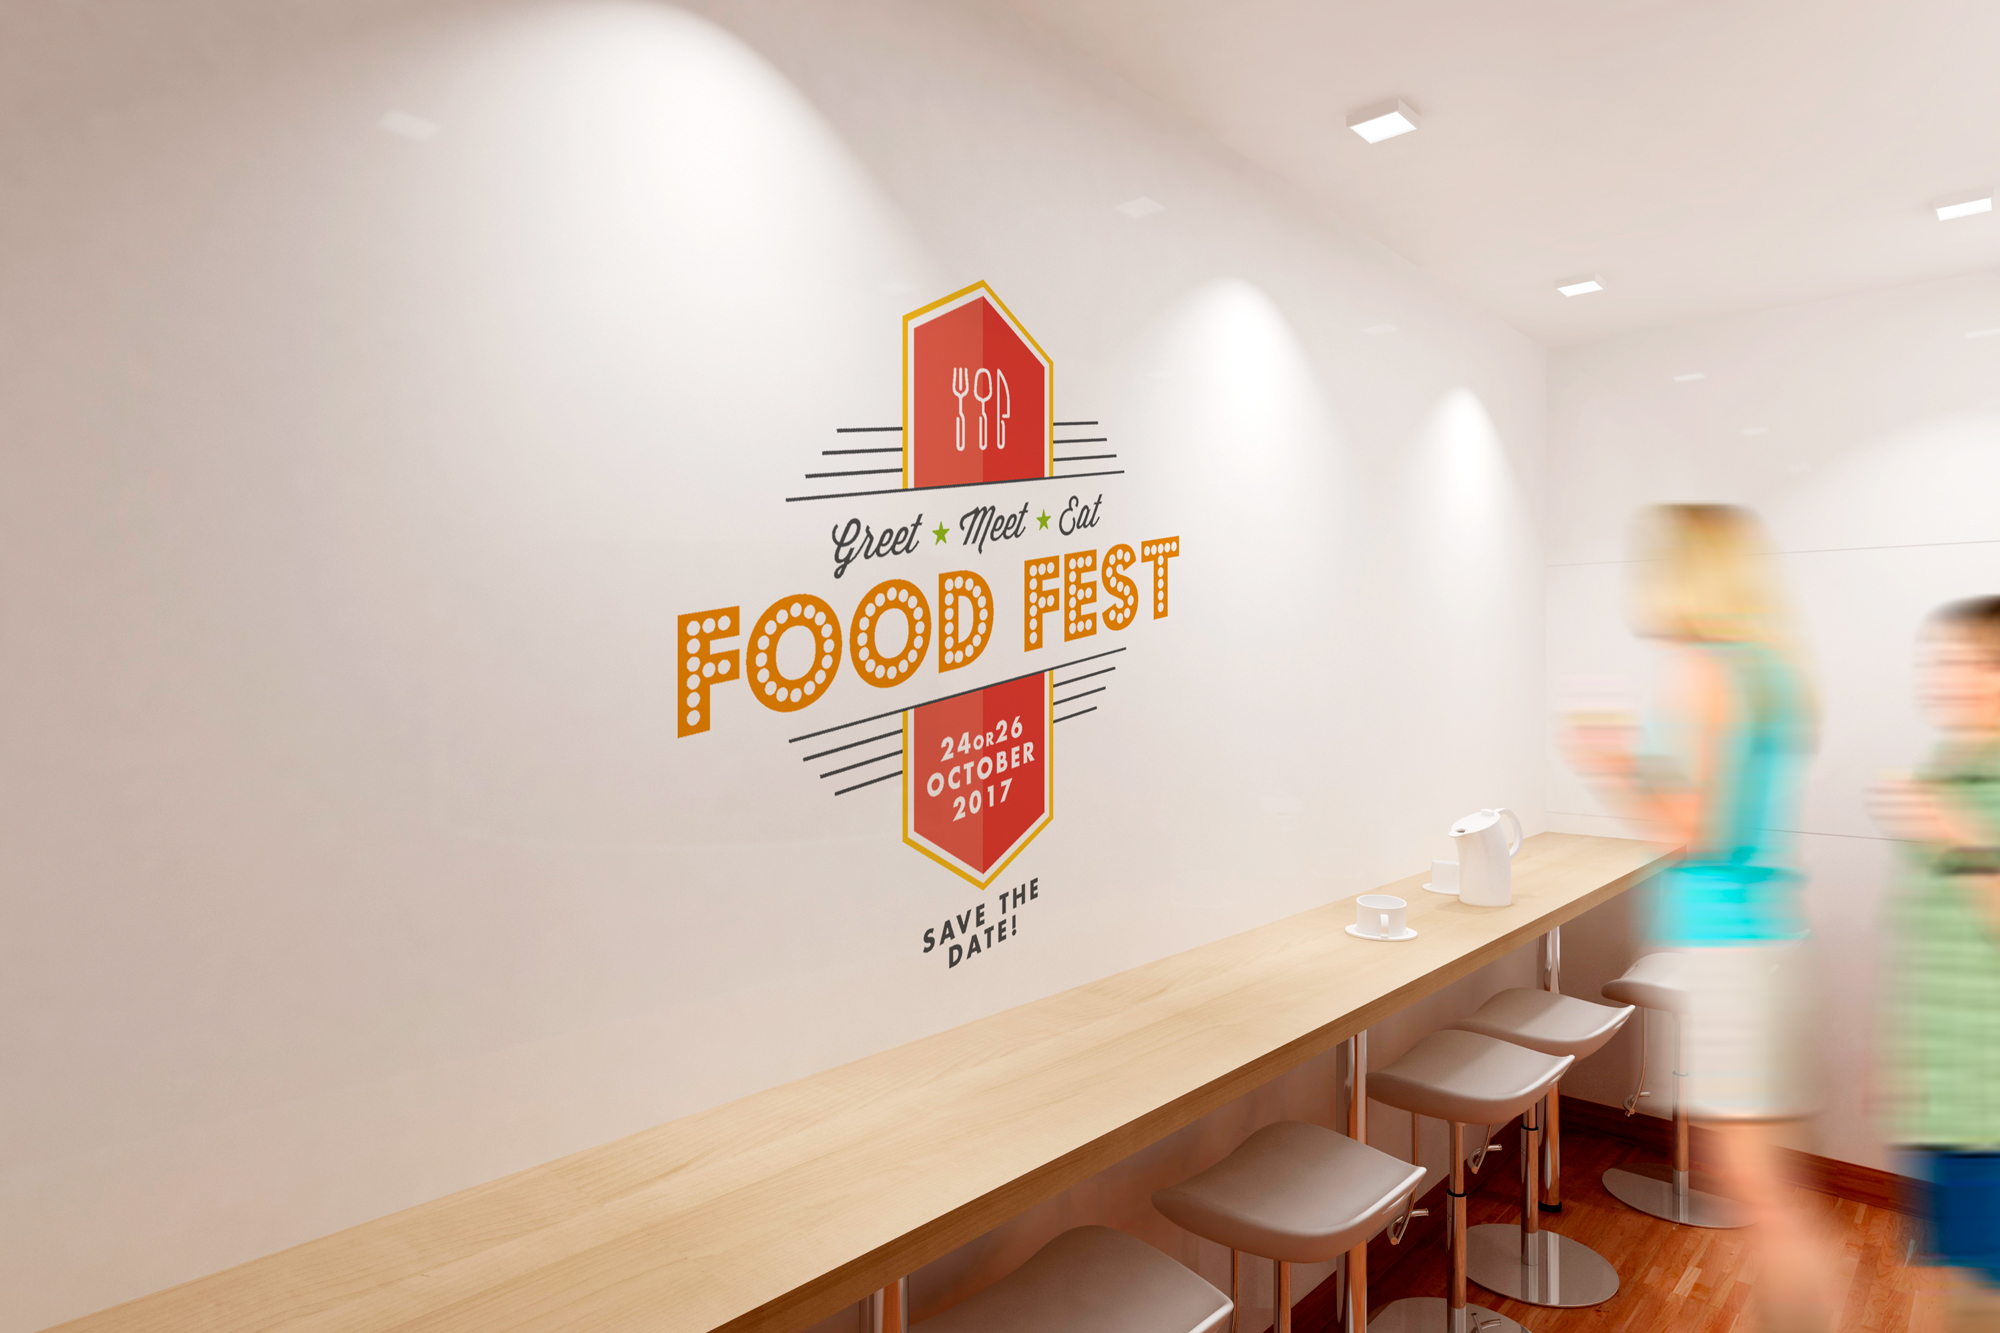 GEA & Griffith Foods food fest event branding